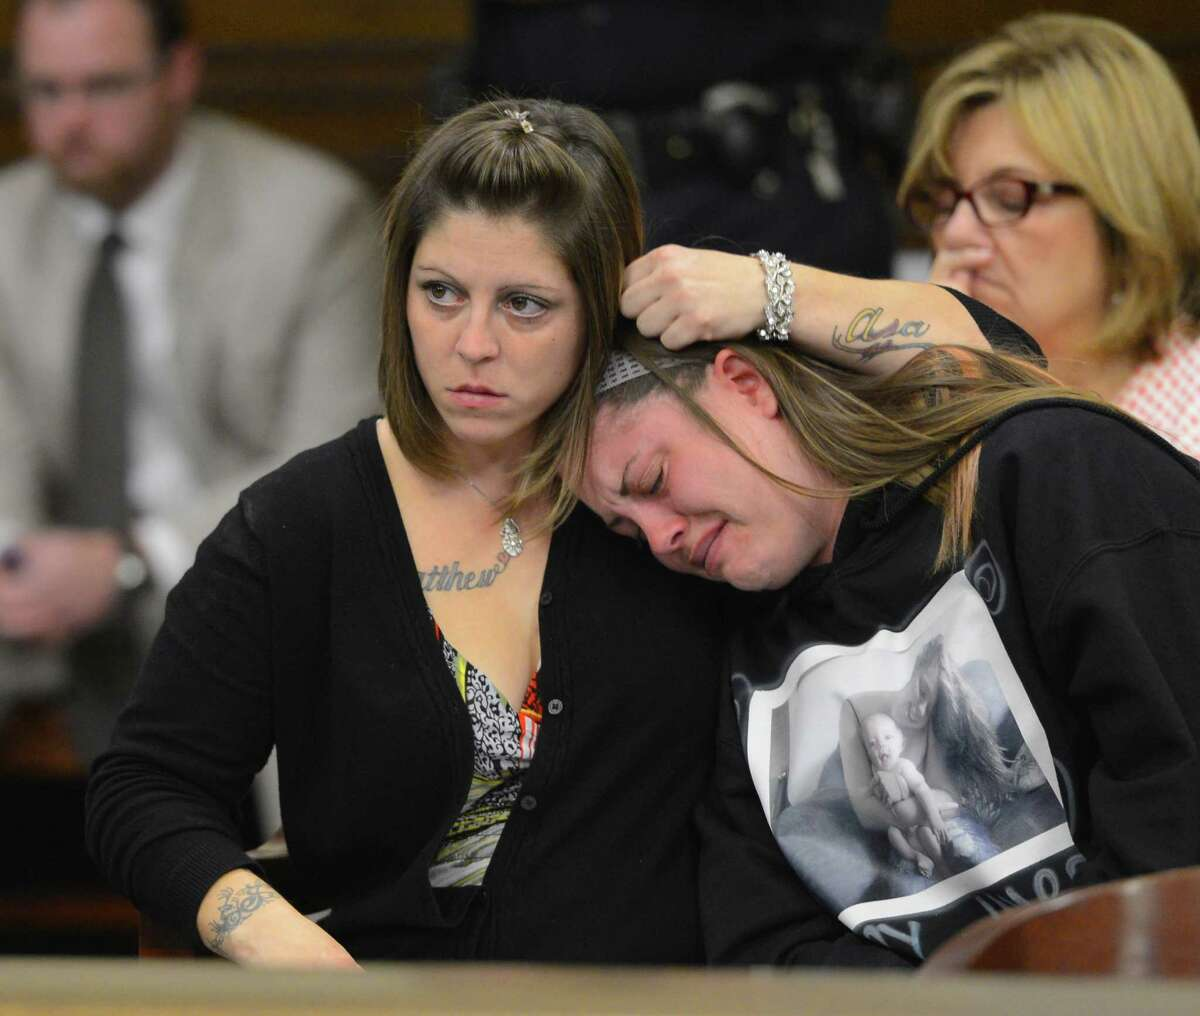 Shannon Pozniakas, left, comforts her sister Kayla Sticklemyer as Robert Hayden was sentenced for killing Pozniakas' child Avery Cahn while babysitting the child. Hayden's sentence was imposed by Rensselaer County Judge Andrew Ceresia in the Rensselaer County Courthouse in Troy, N.Y. Oct 25, 2012. (Skip Dickstein/Times Union)